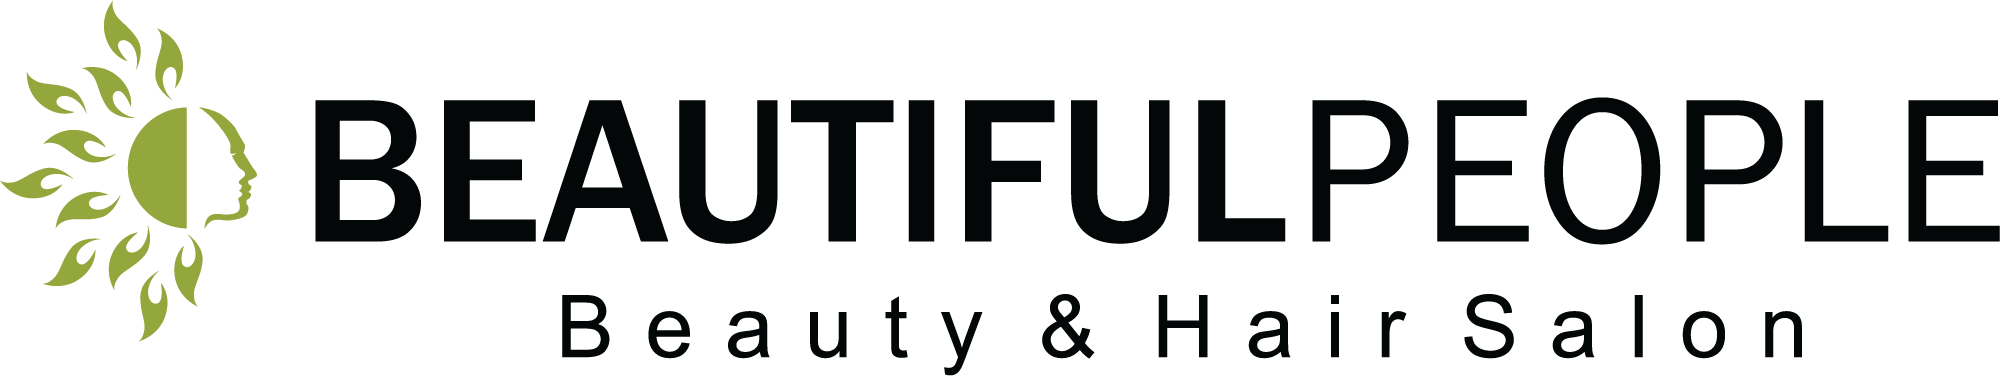 beautifulpeople logo